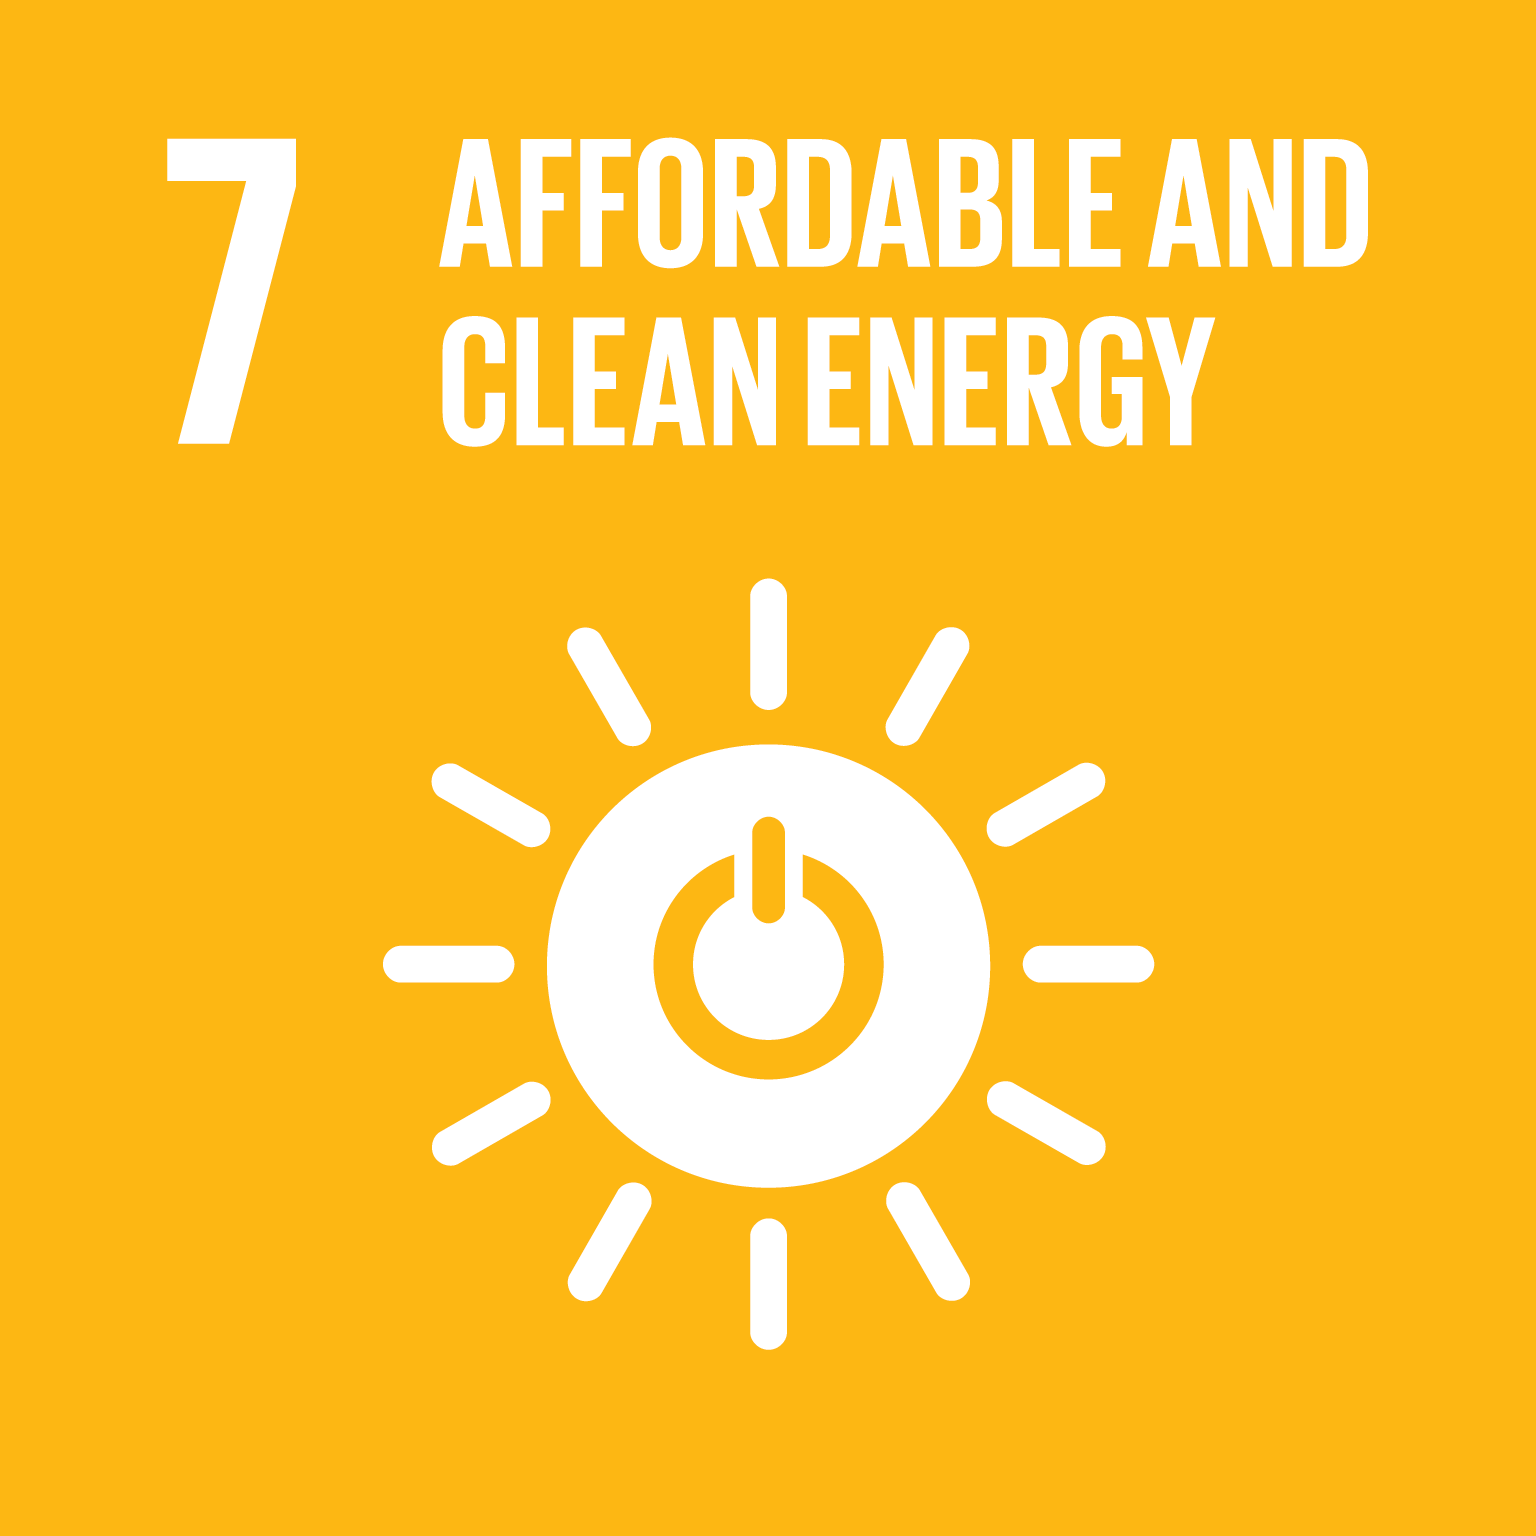 Affordable and clean energy - Sustainable Development Goals